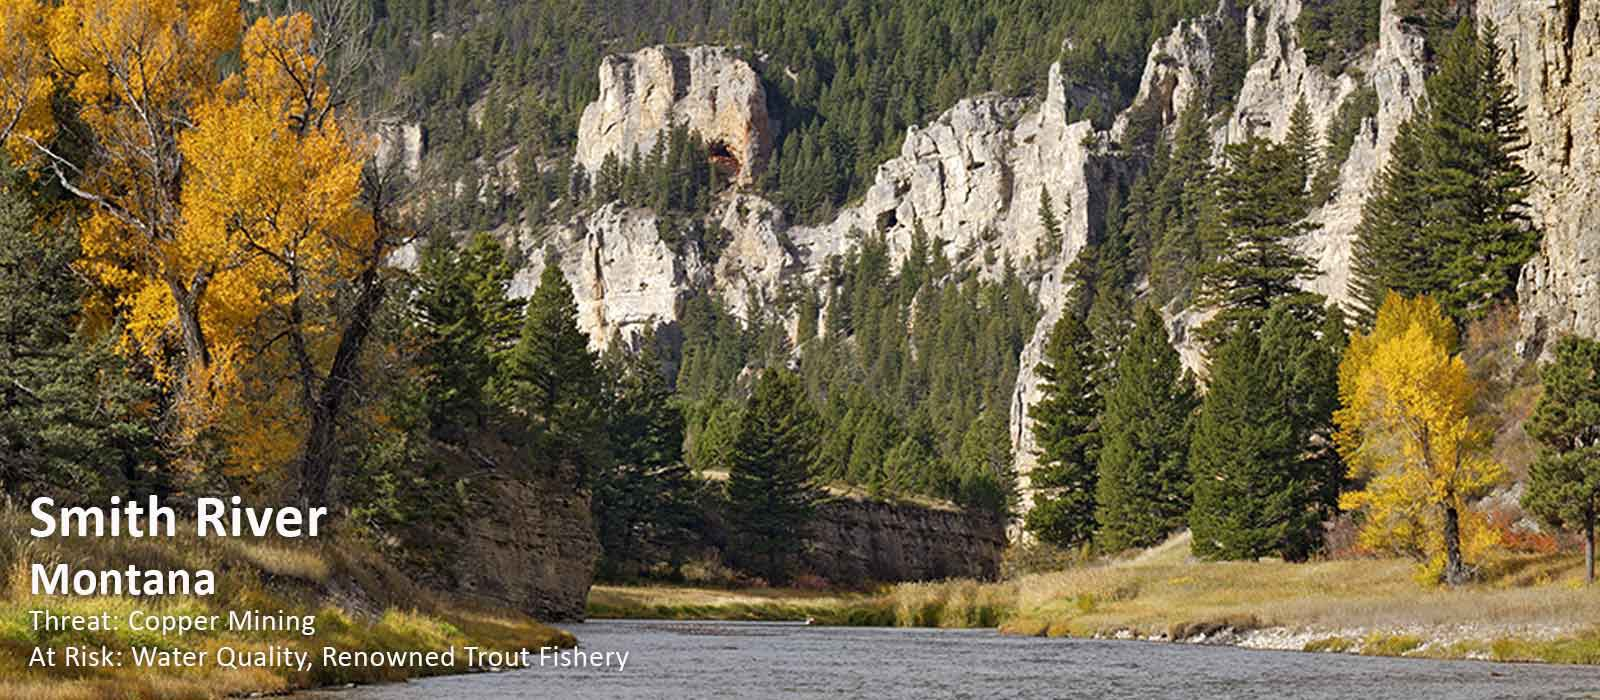 Smith River, Montana - Americas Most Endangered Rivers for